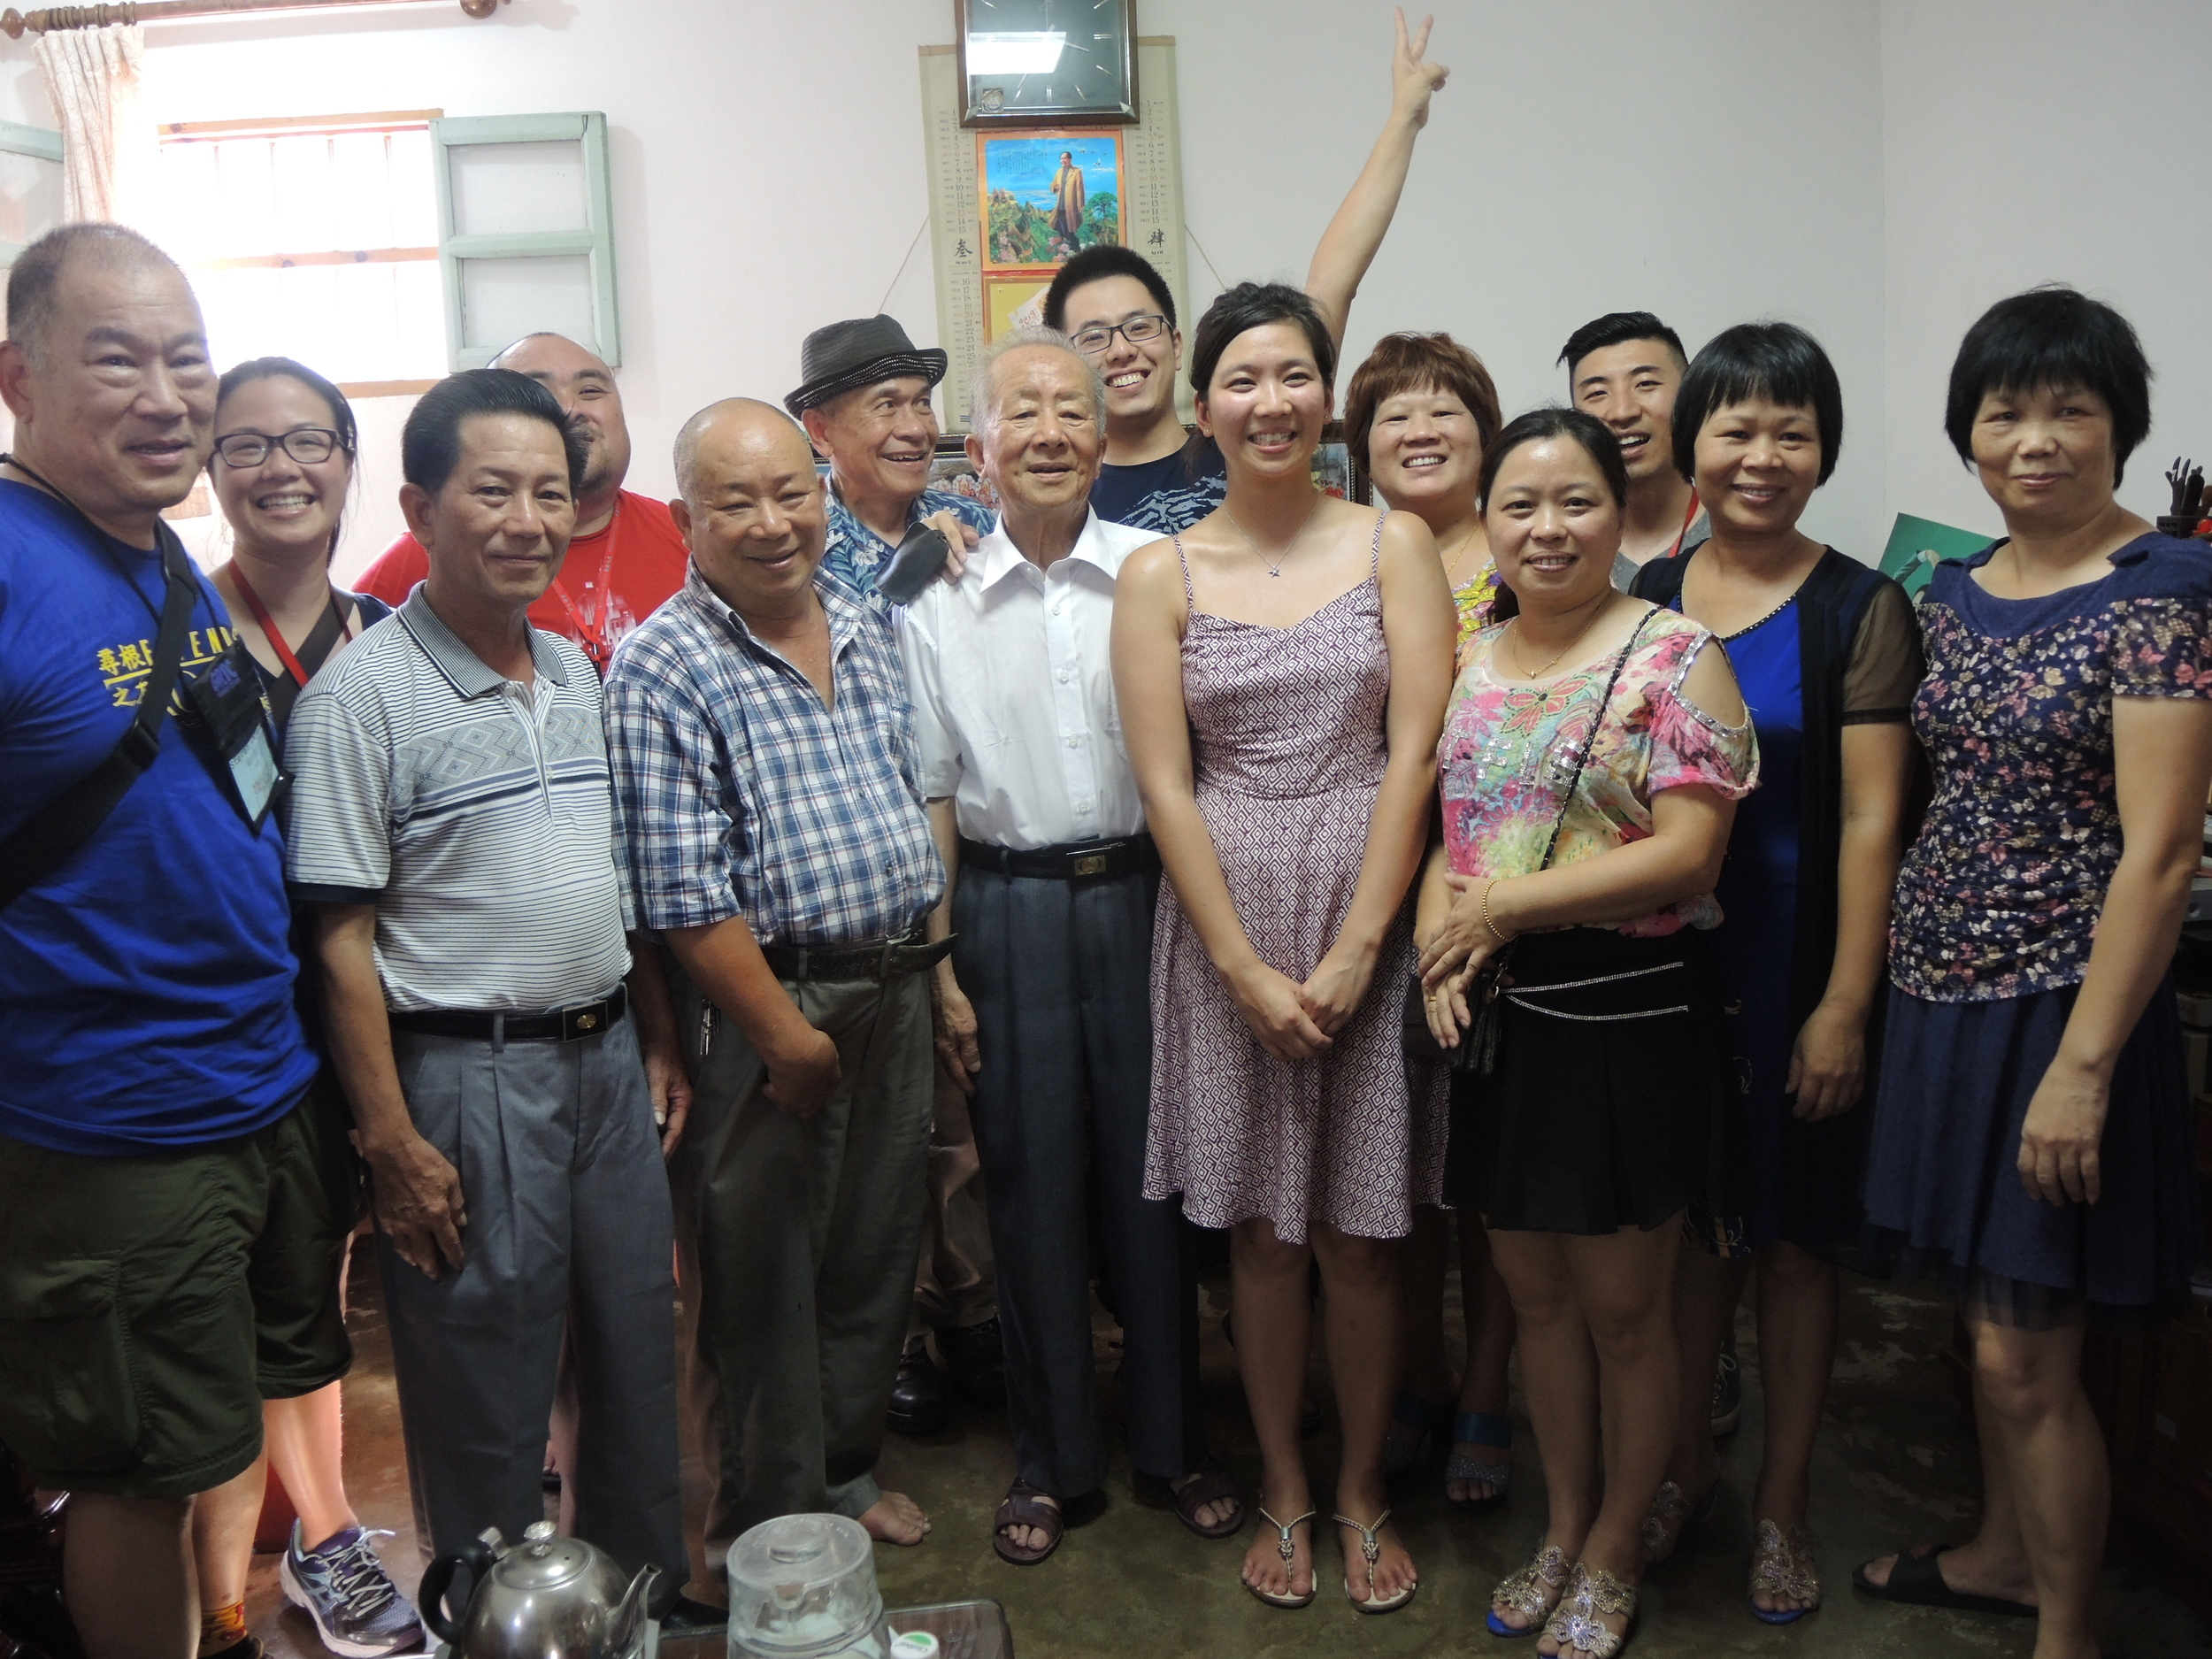 Family group photo with leaders inside third granduncle's home after some kung fu cha